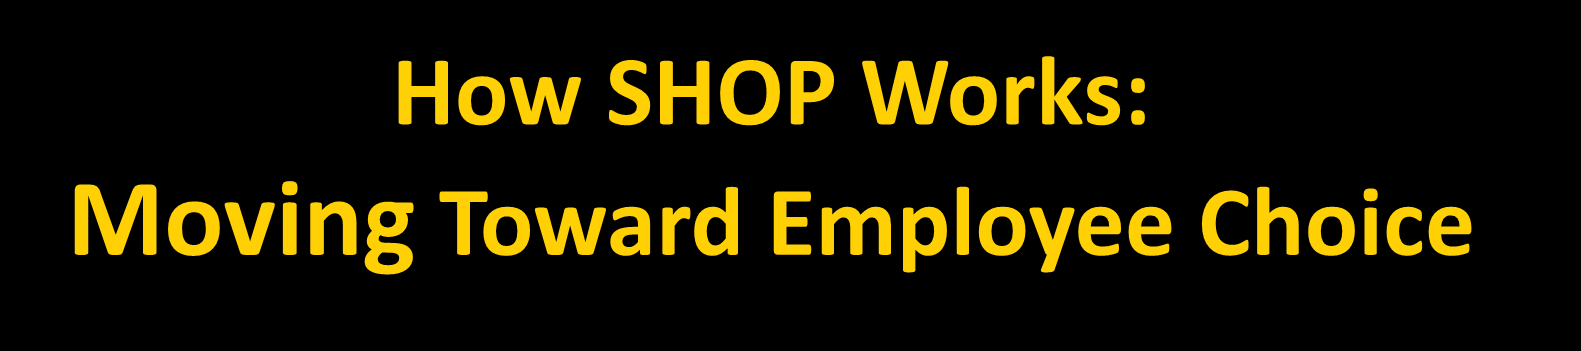 How SHOP Works: Moving Toward Employee Choice A key goal of the SHOP: Options for small employers and their employees Such as offering employees a single plan or a choice of plans Employee Choice has